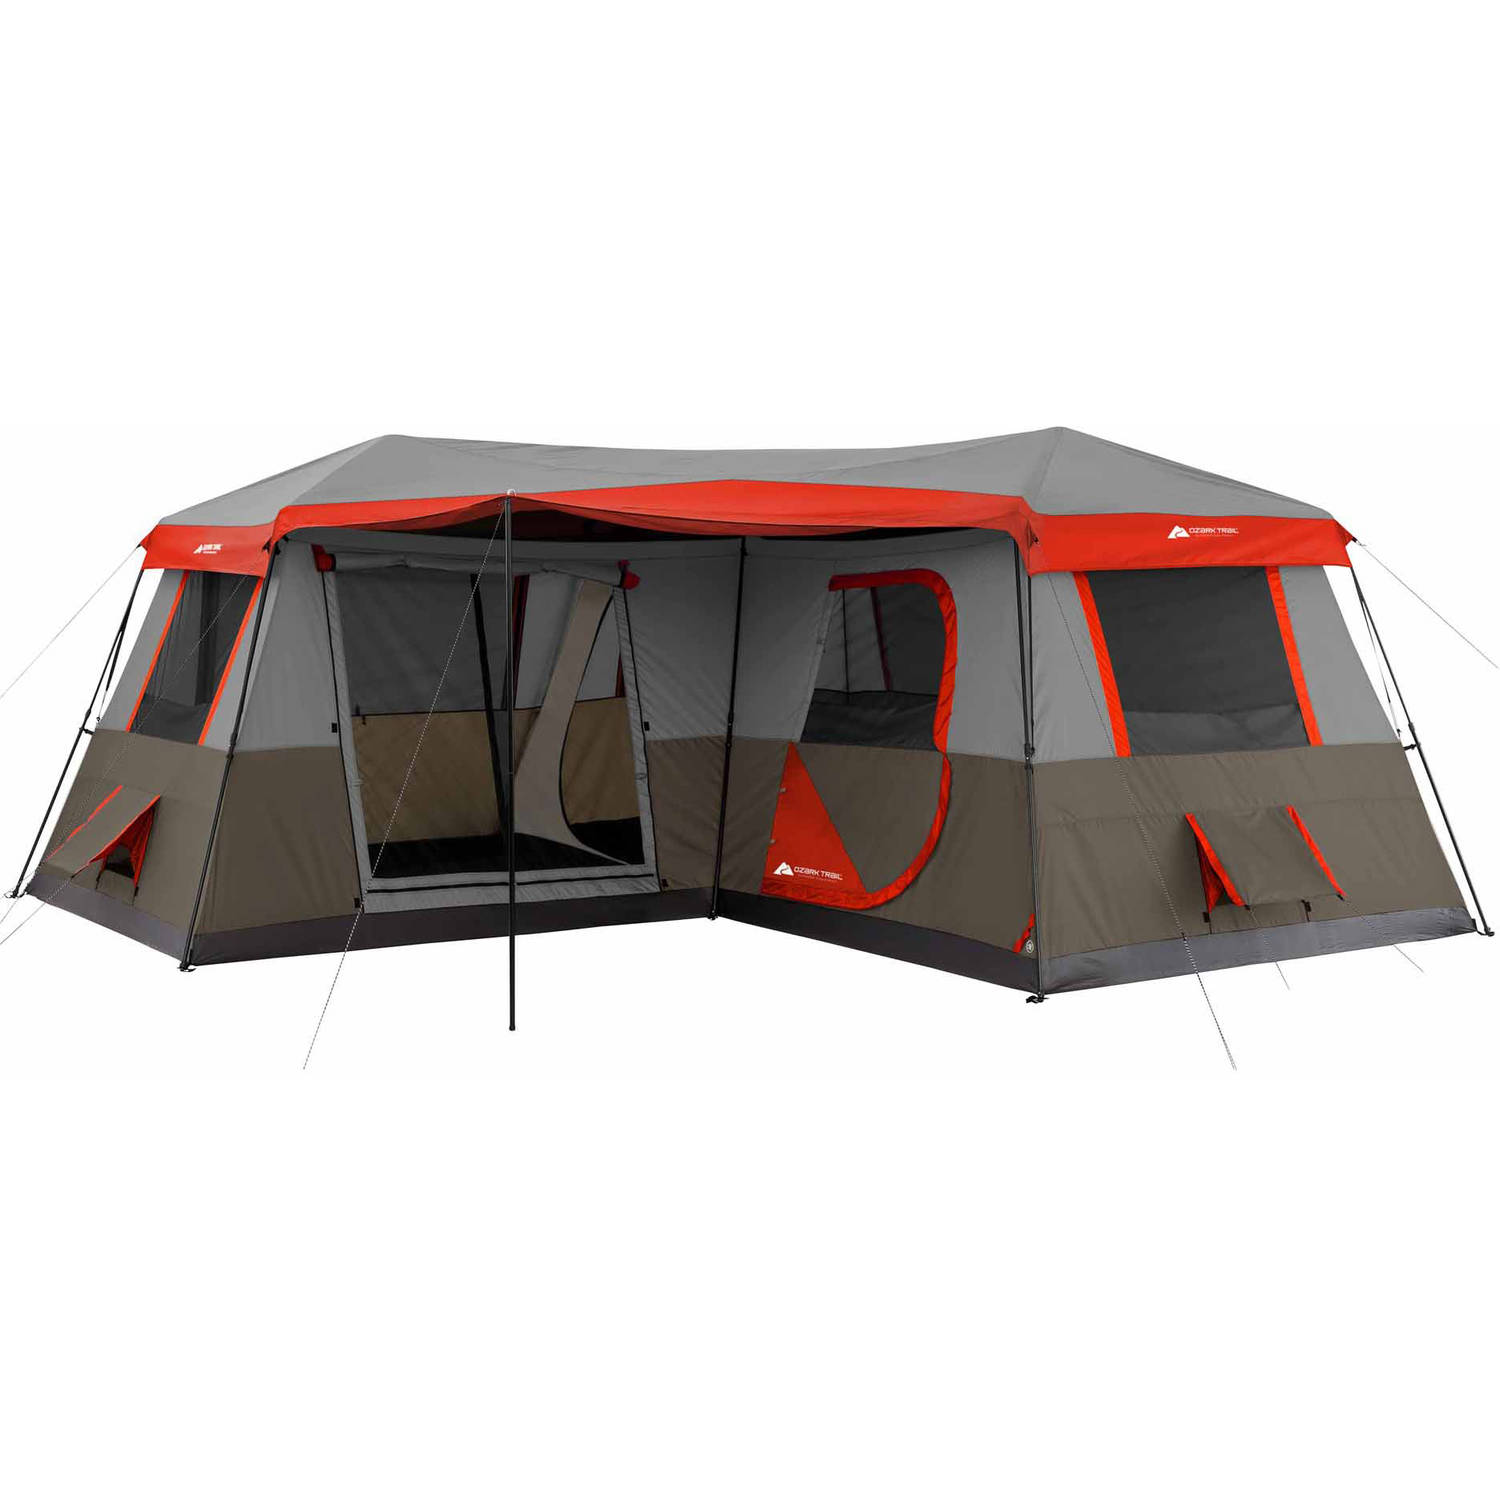 sc 1 st  Walmart & Xscape Designs Tents